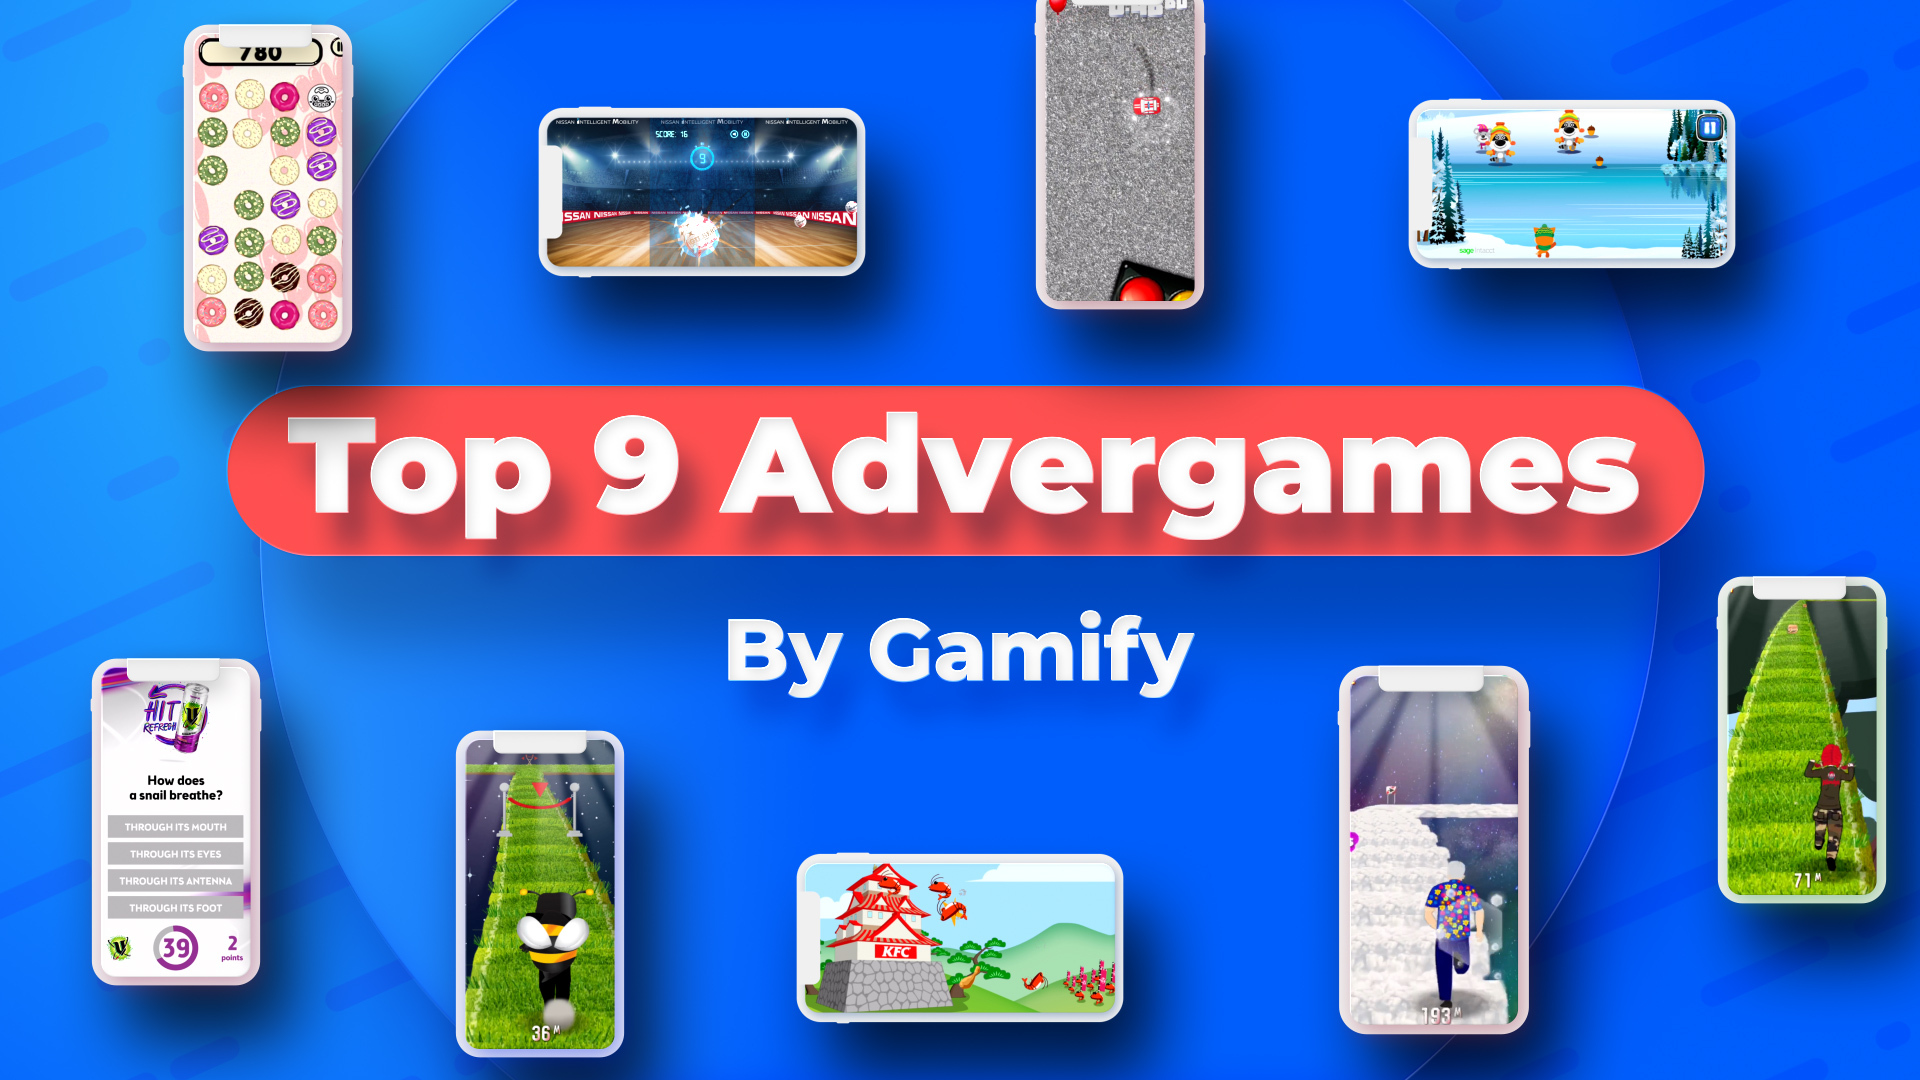 Top 9 Advergames by Gamify